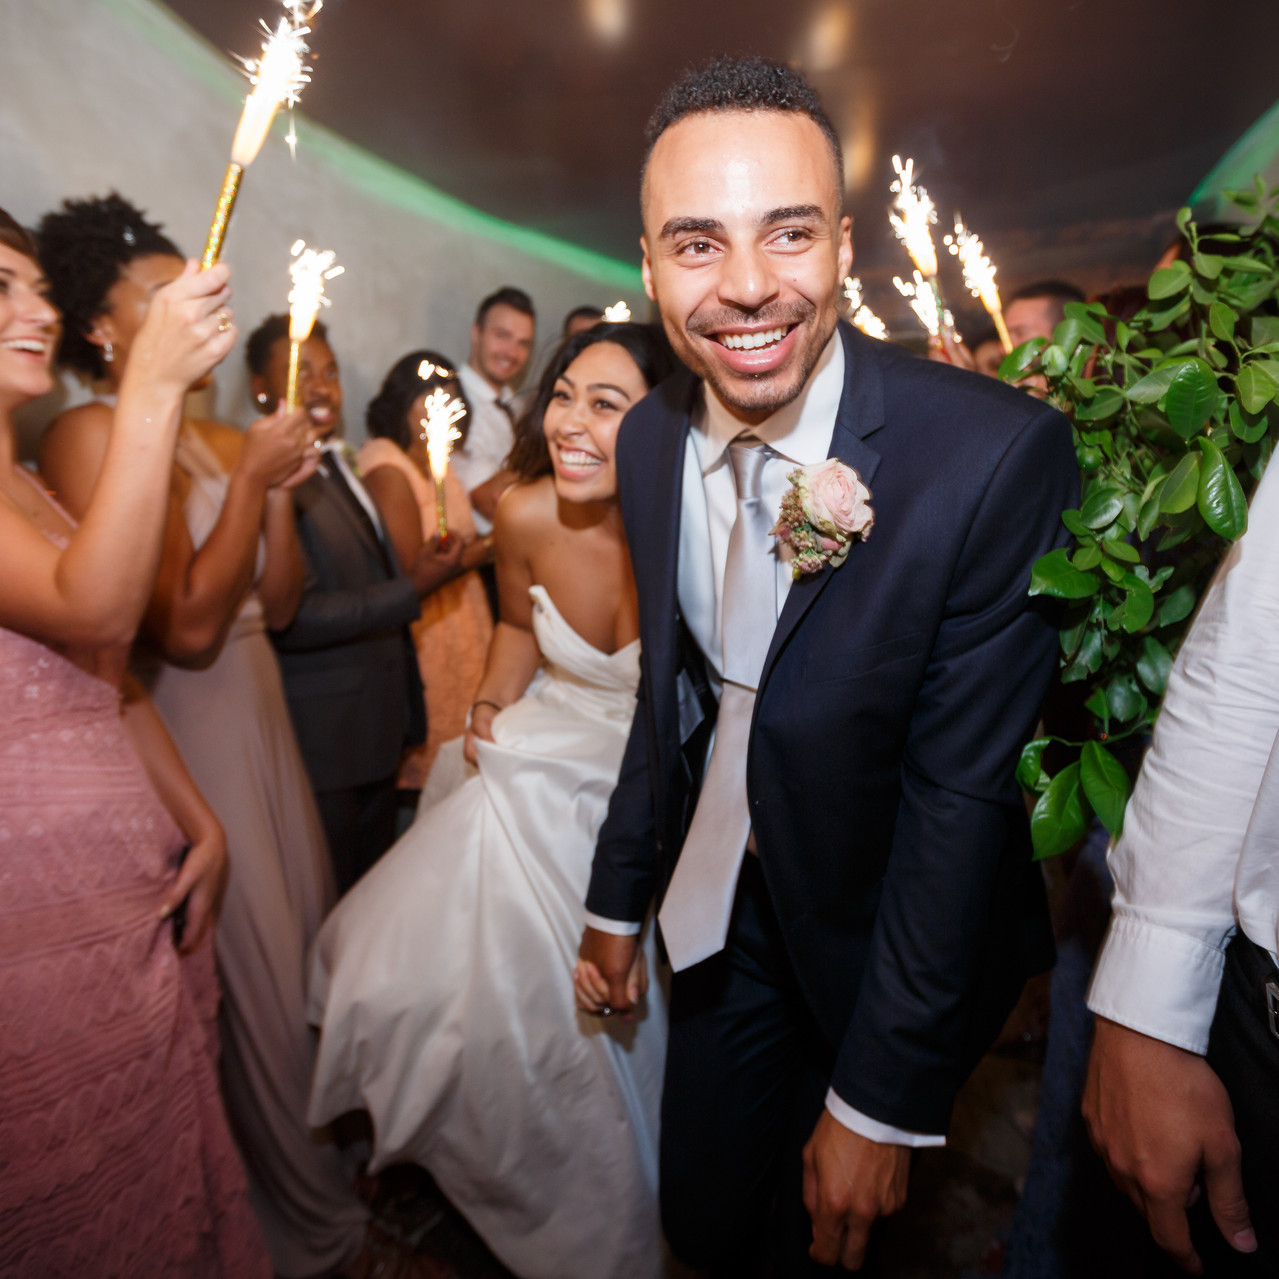 Mia Jesse Wedding September 2015 Camera One card two (494 of 511)